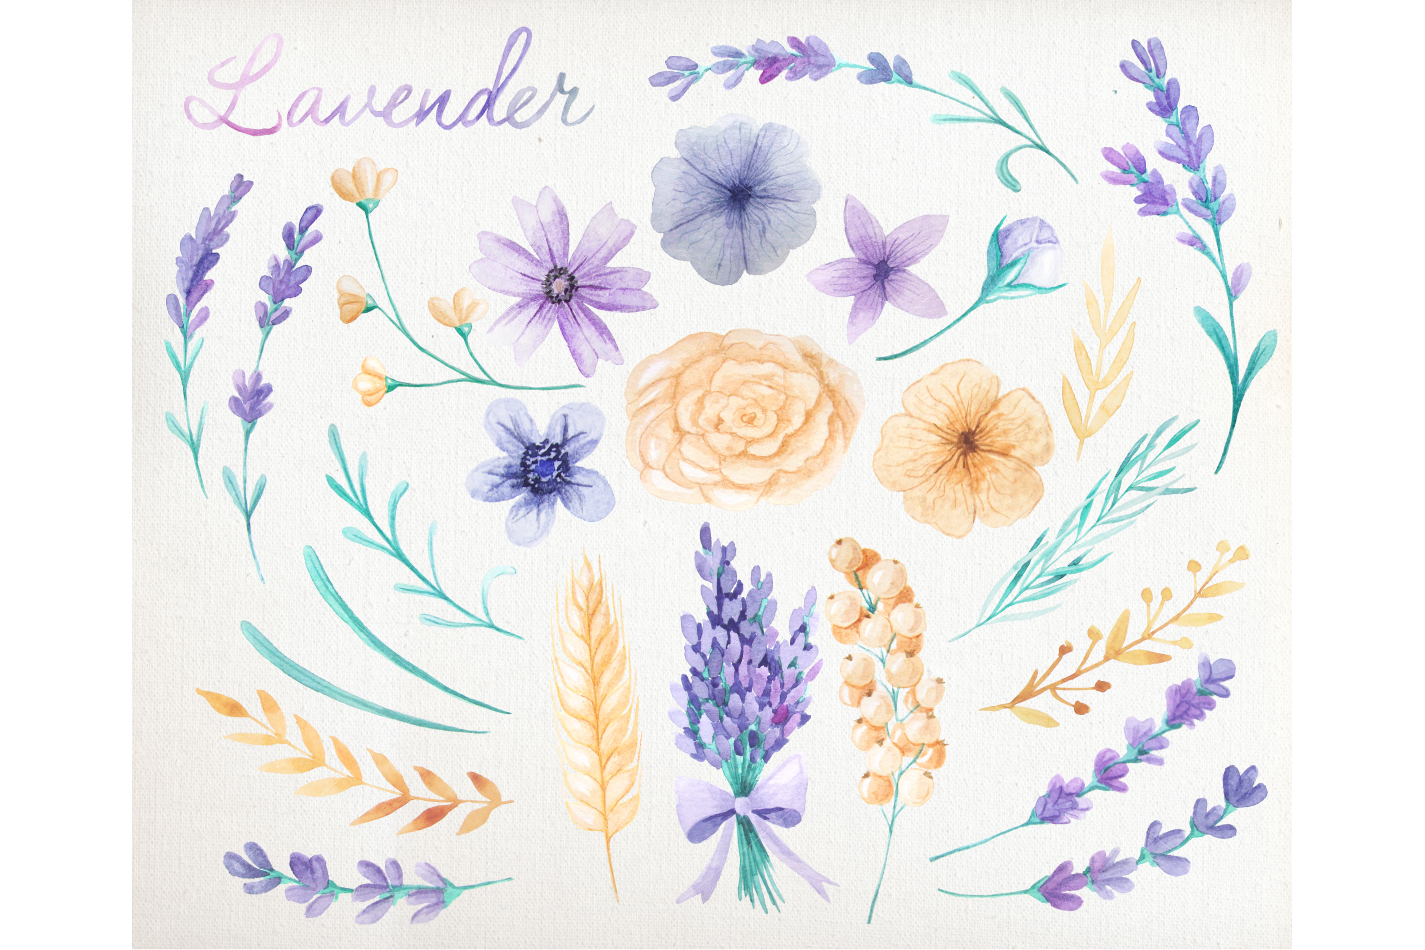 Watercolor Lavender Design Pack example image 2